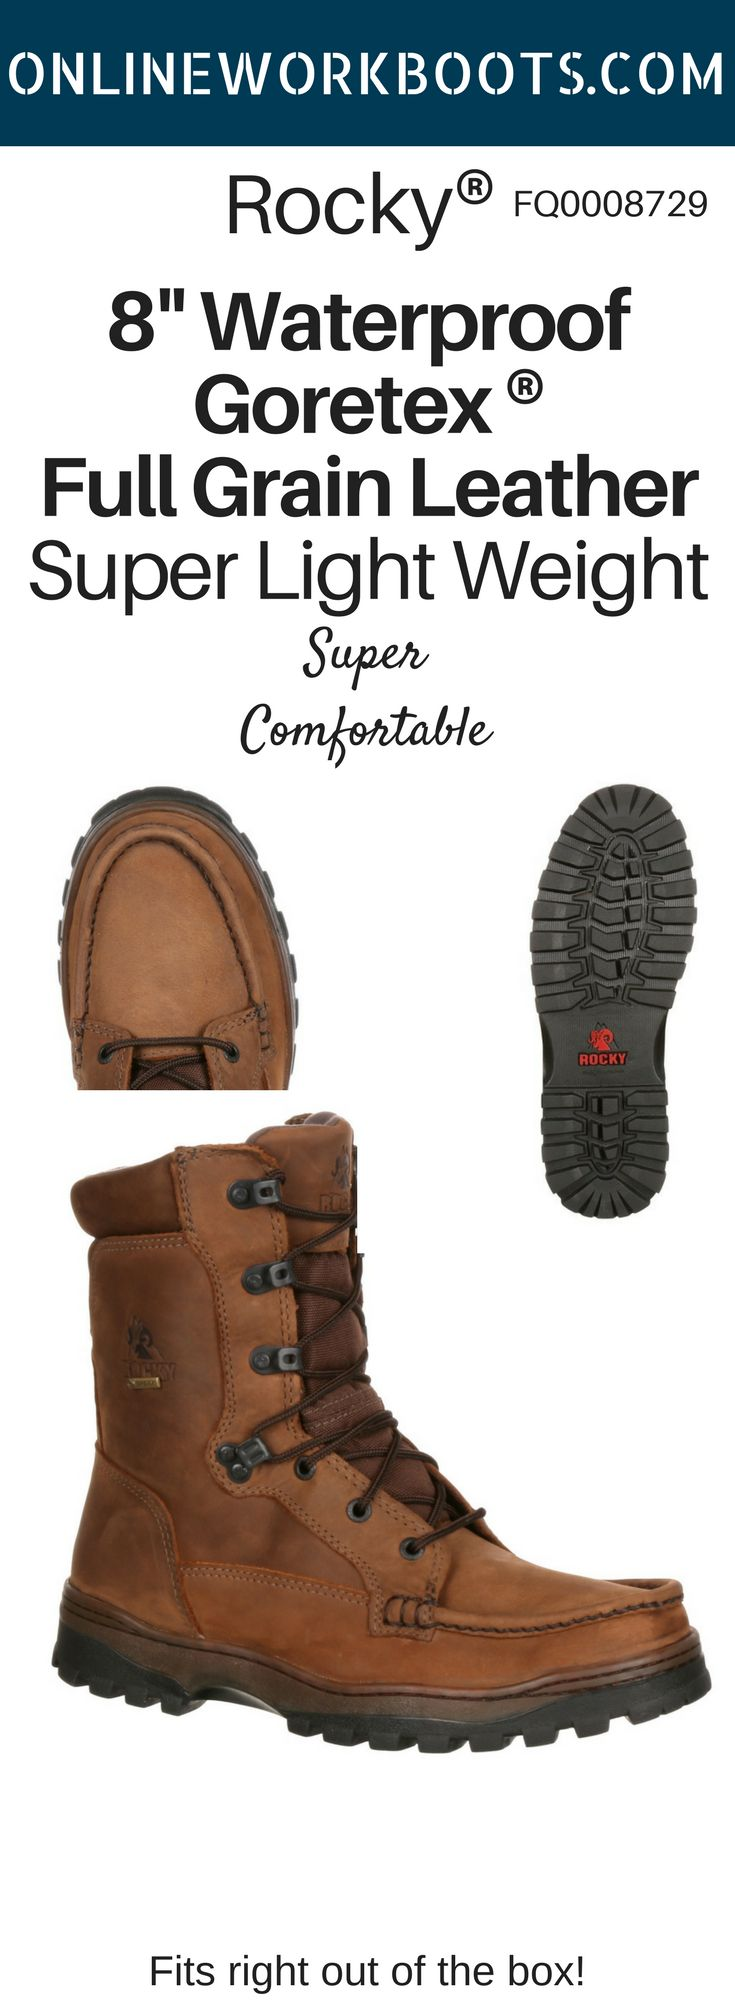 Soft Full-grain leather Airport Footbed Provides Support and Cushioning Outback outsole provides stability on rugged terrains Waterproof and breathable GORE-TEX® construction 8 Inches in height. Try a pair today! #onlineworkboots #rockyboots #onlineshopping